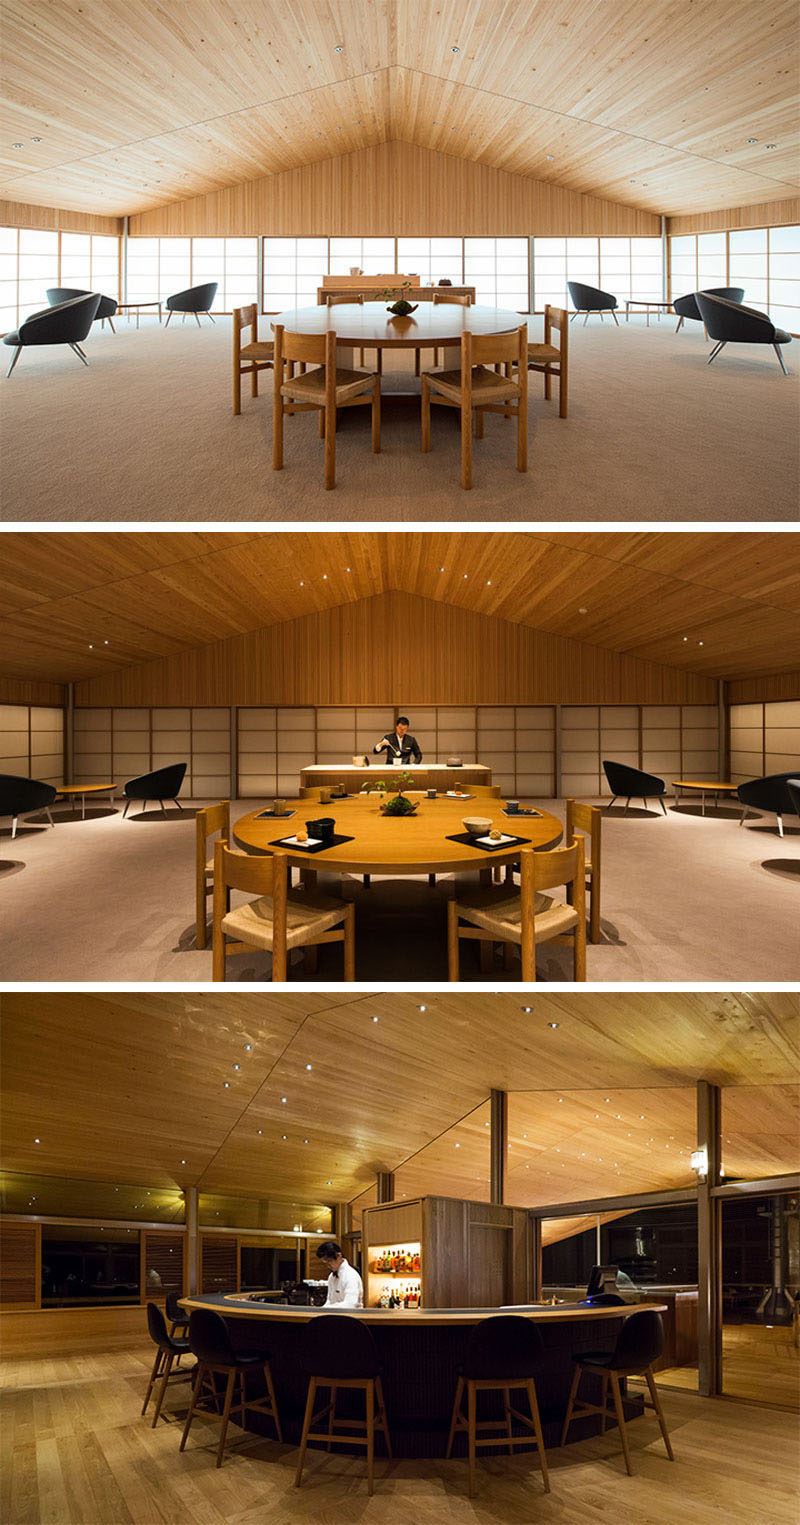 This modern floating hotel in Japan has an indoor lounge with a striking peaked wood ceiling and a curved bar. #FloatingHotel #WoodCeiling #Japan